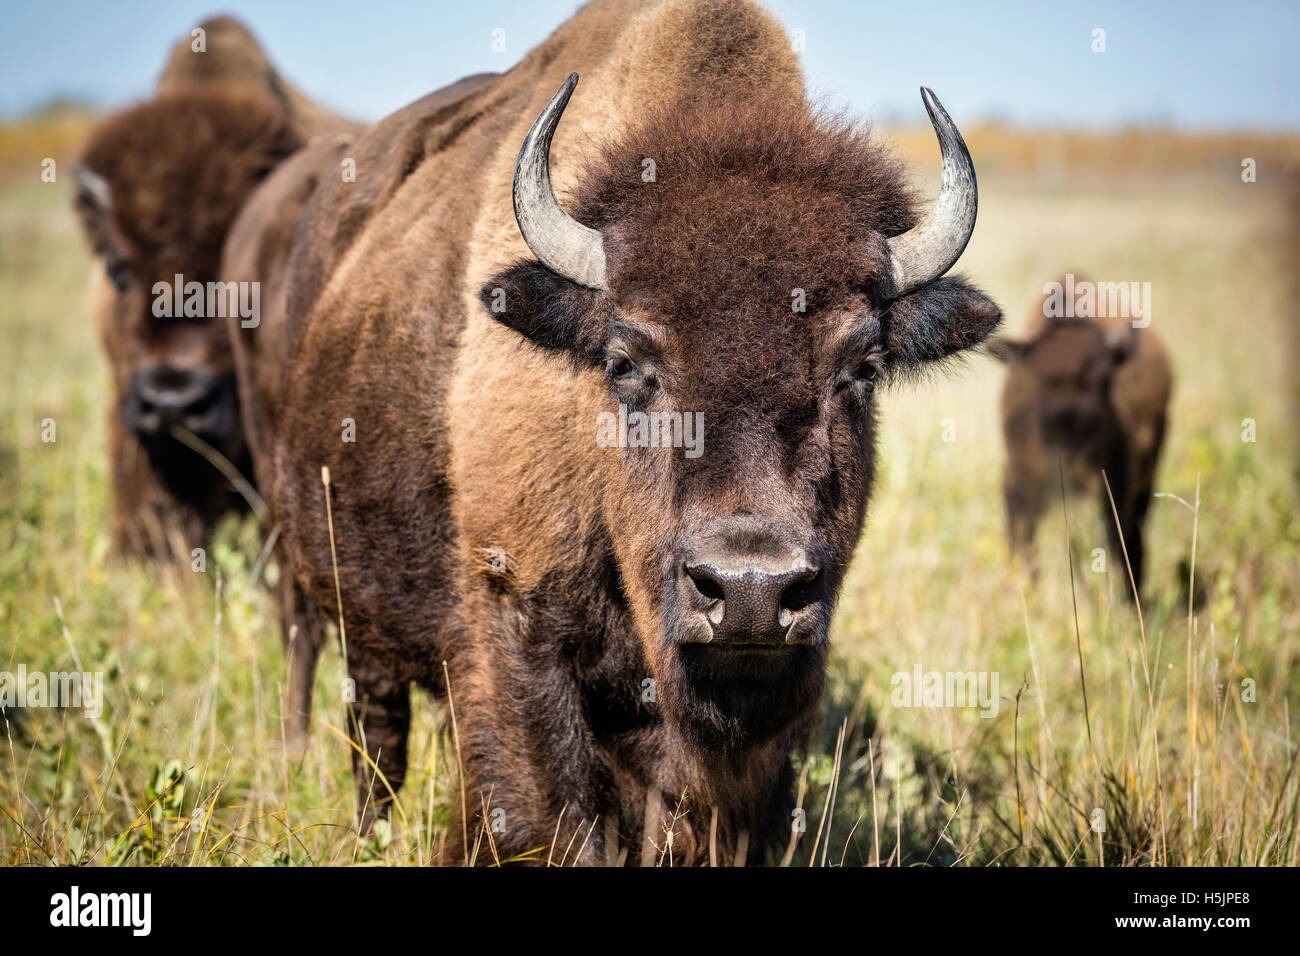 Plains Bison, (Bison bison bison) or American Buffalo, Riding Mountain National Park, Manitoba, Canada. - Stock Image